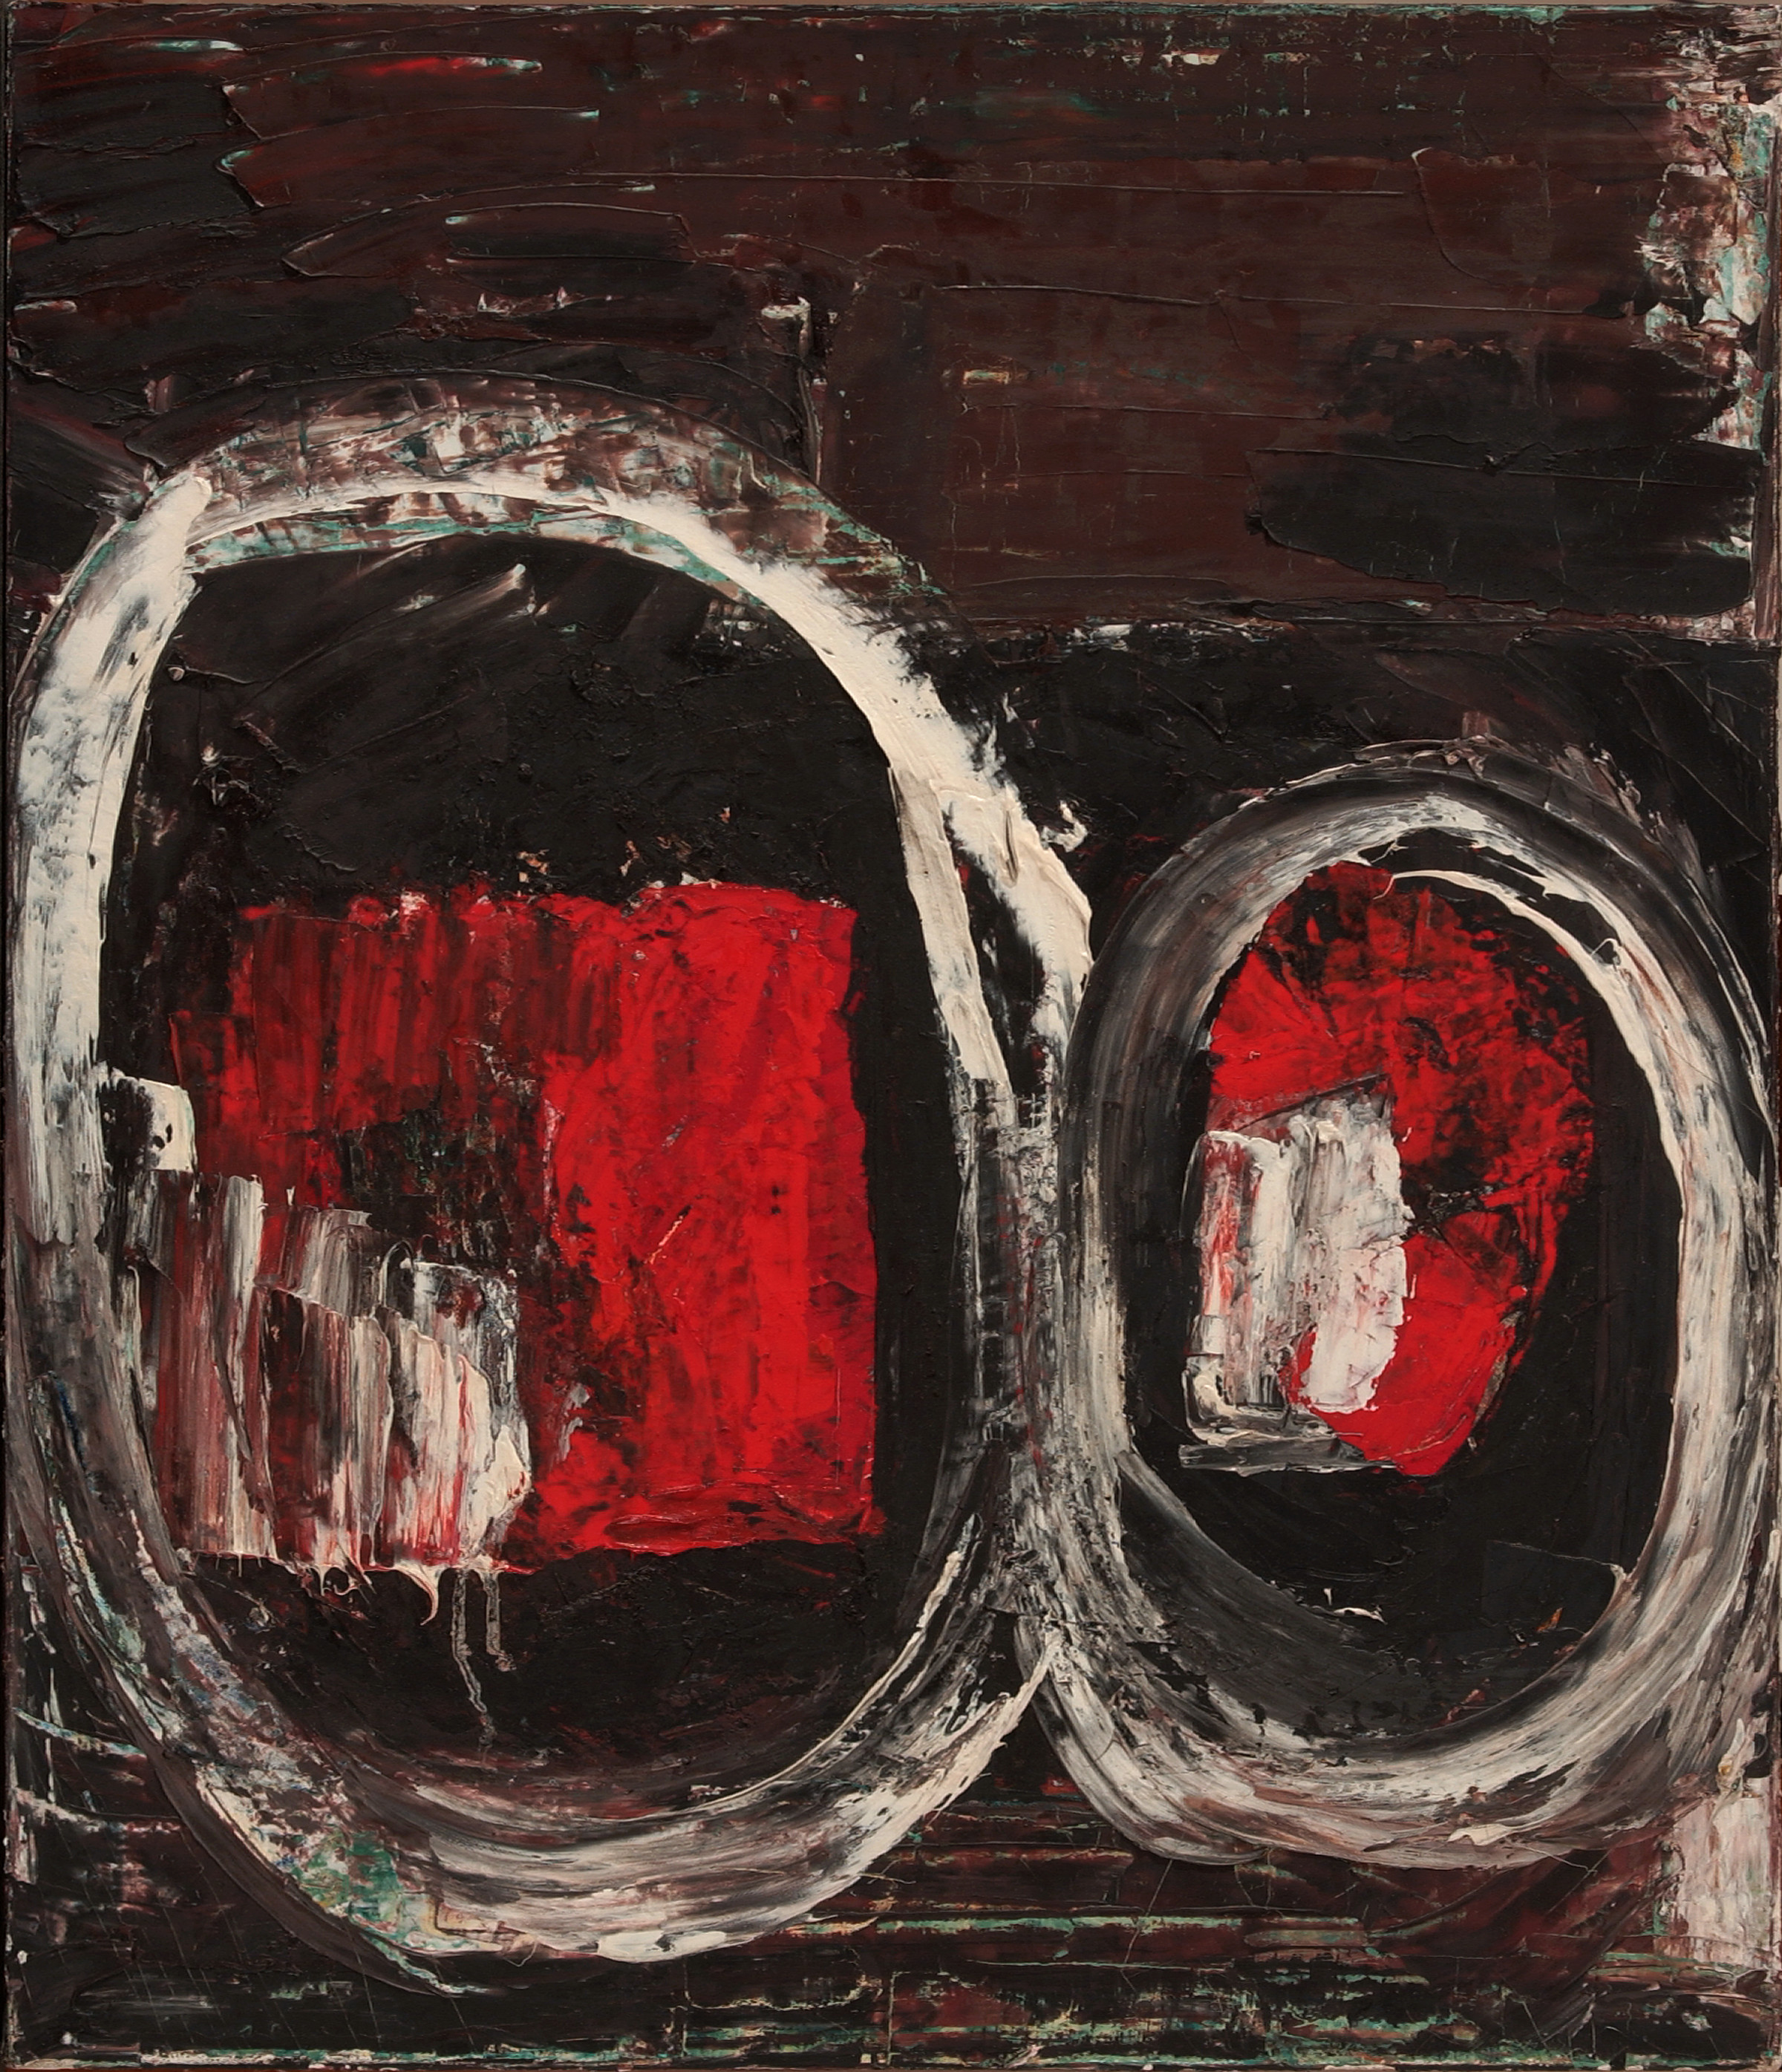 A canvas that has been thickly painted to have a dark brown and black background. The outlines of two large white ovals are placed side by side, spanning the width of the canvas and almost two-thirds the height, and rendered with visible brushwork. The left oval is slightly larger than the right. Inside the ovals are splotches of red and white paint, which have been applied in similarly thick brushstrokes.